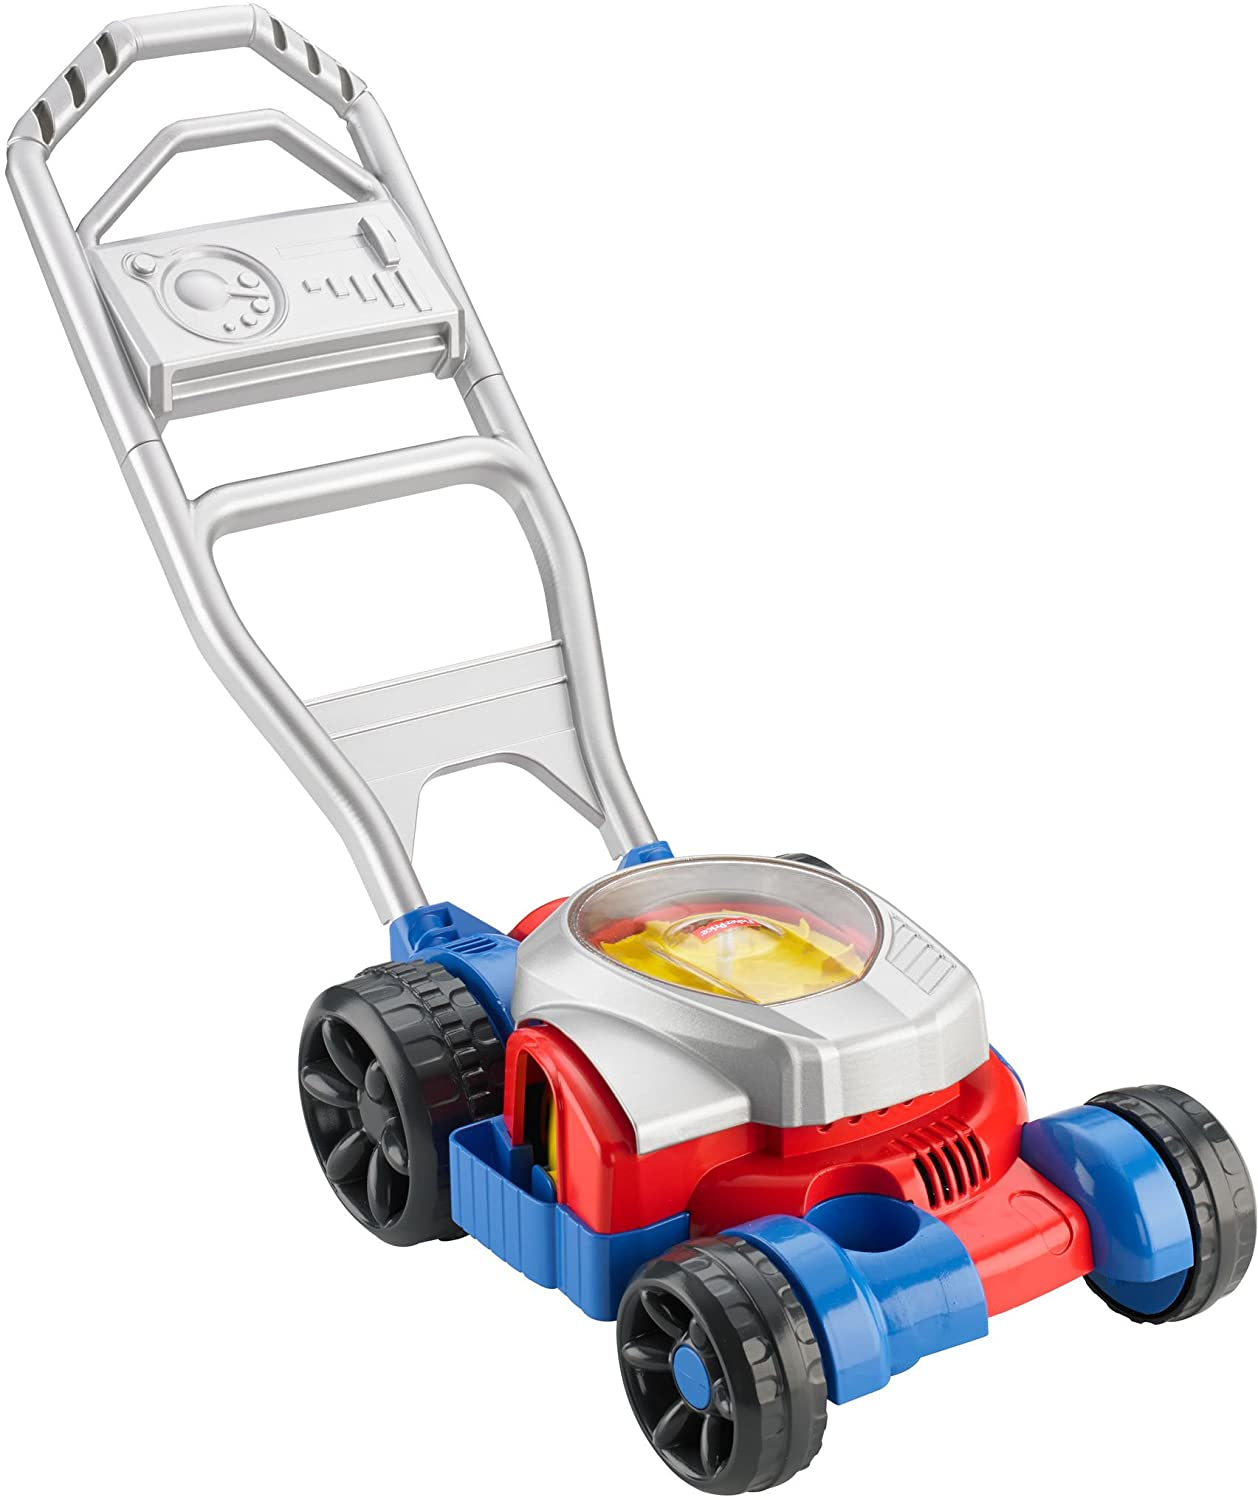 9 Best Bubble Lawn Mower for Kids & Toddlers Reviews of 2021 17